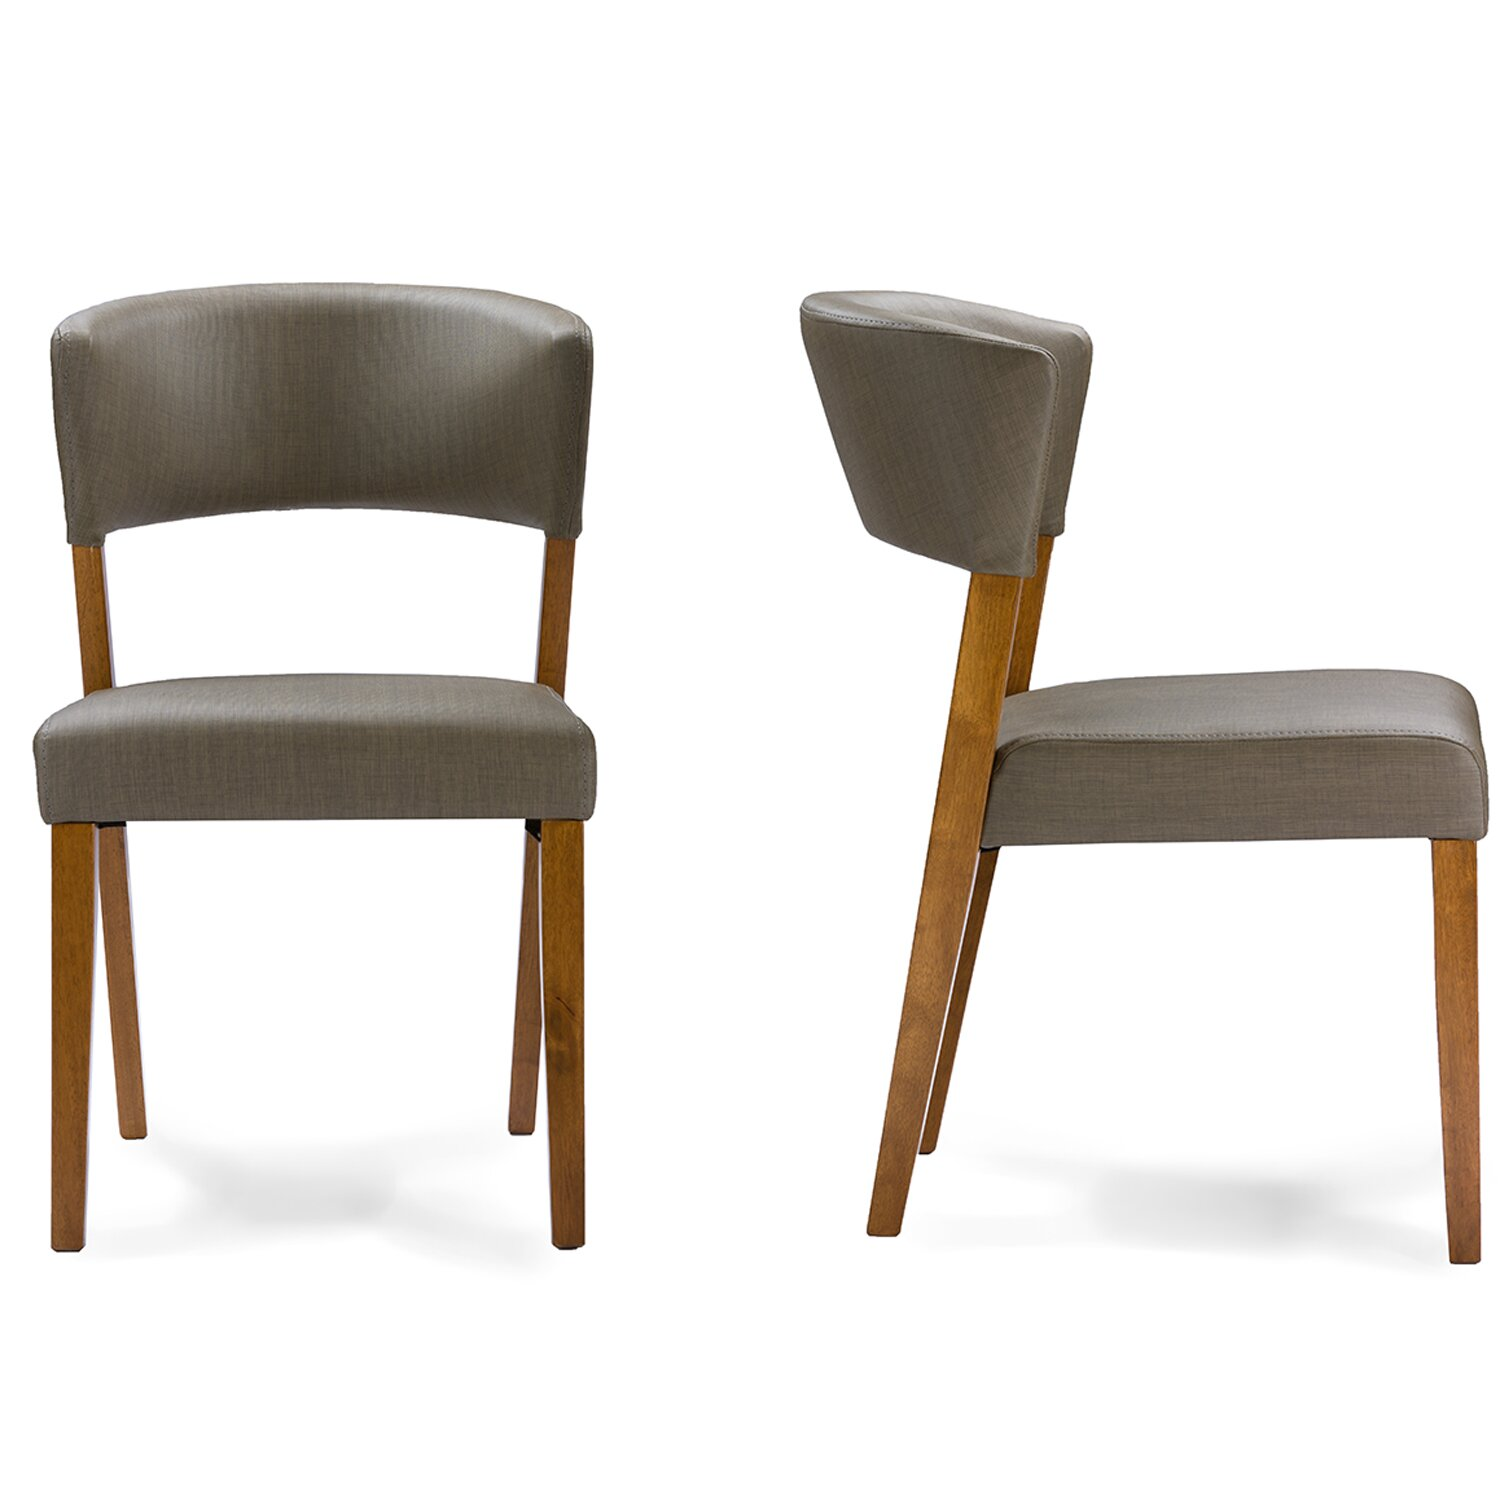 Permalink to Where To Buy Kitchen Chairs In Montreal